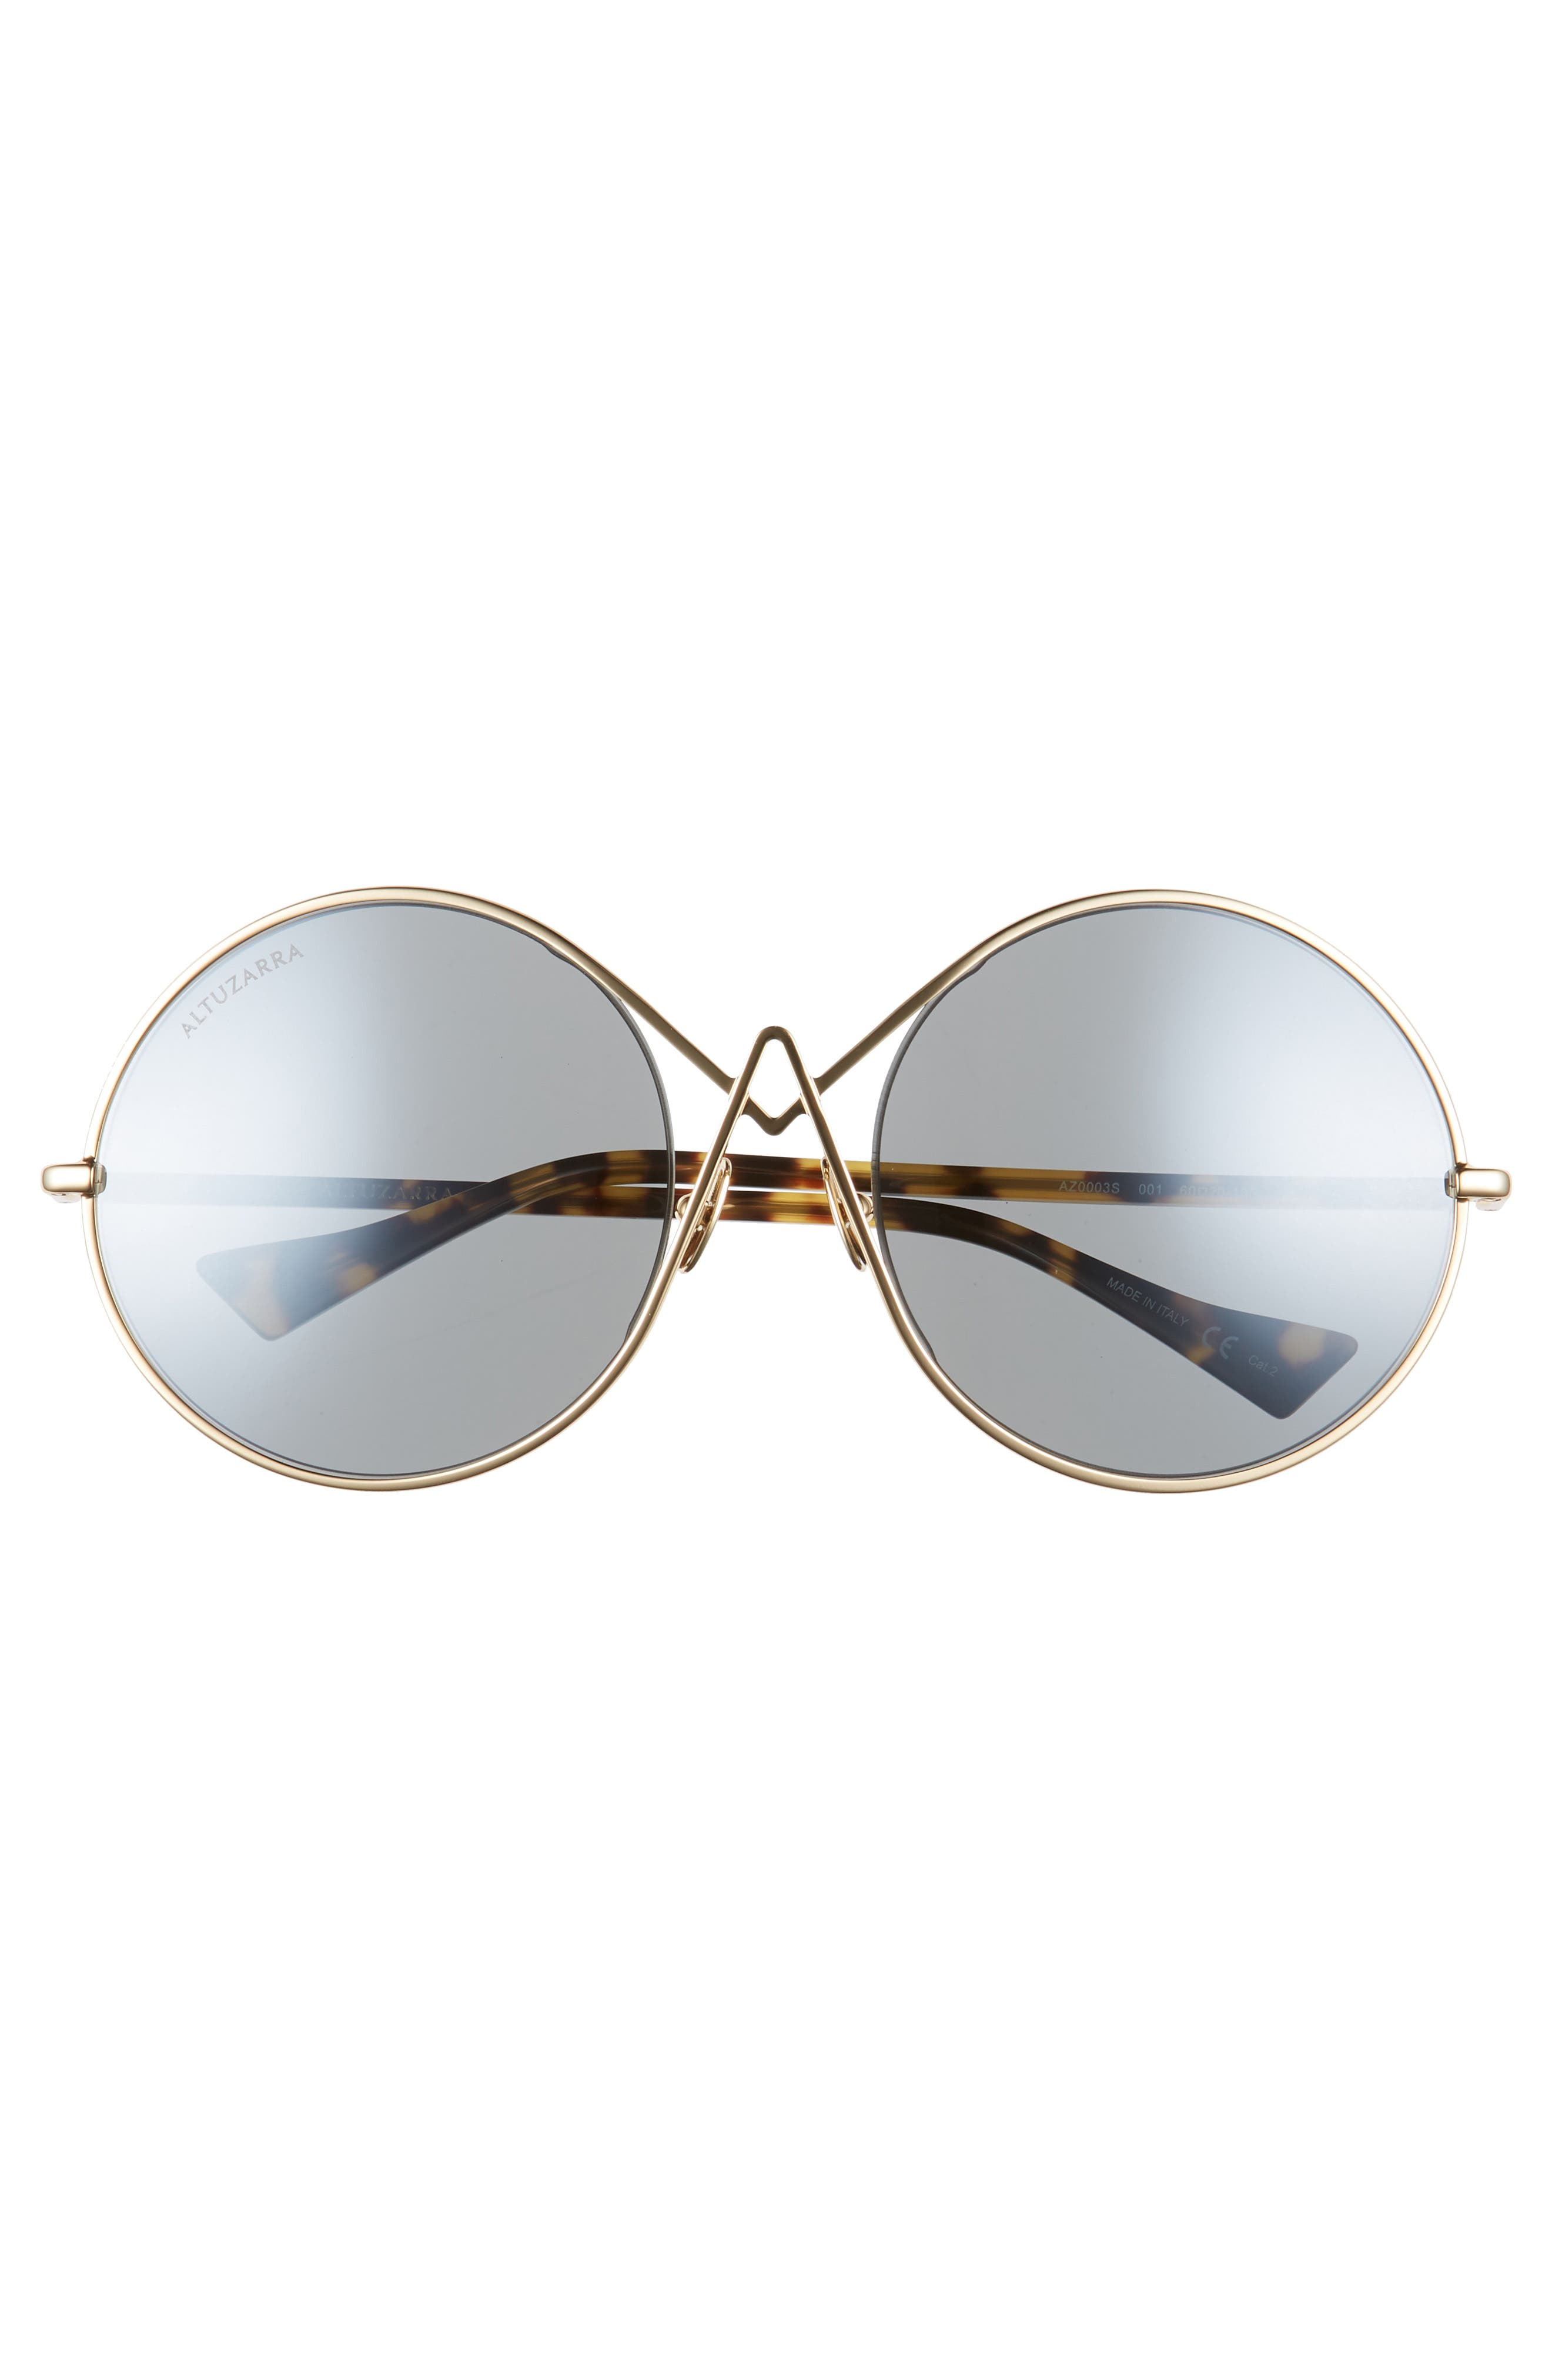 60mm Round Sunglasses,                             Alternate thumbnail 3, color,                             Gold